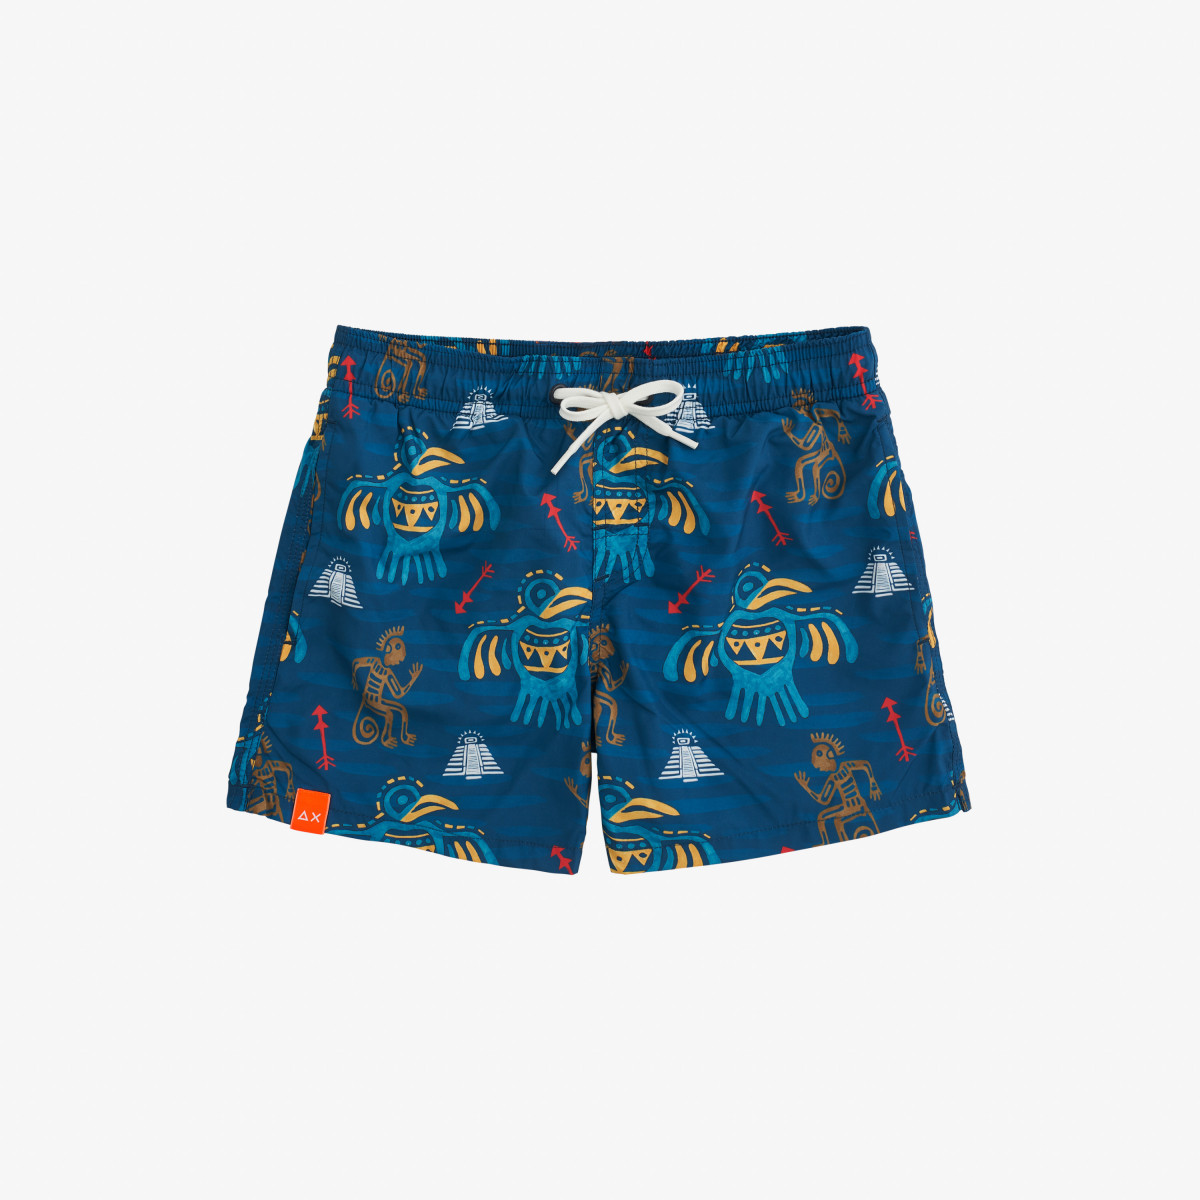 BOY'S SWIM PANT TRIBALE NAVY BLUE/YELLOW